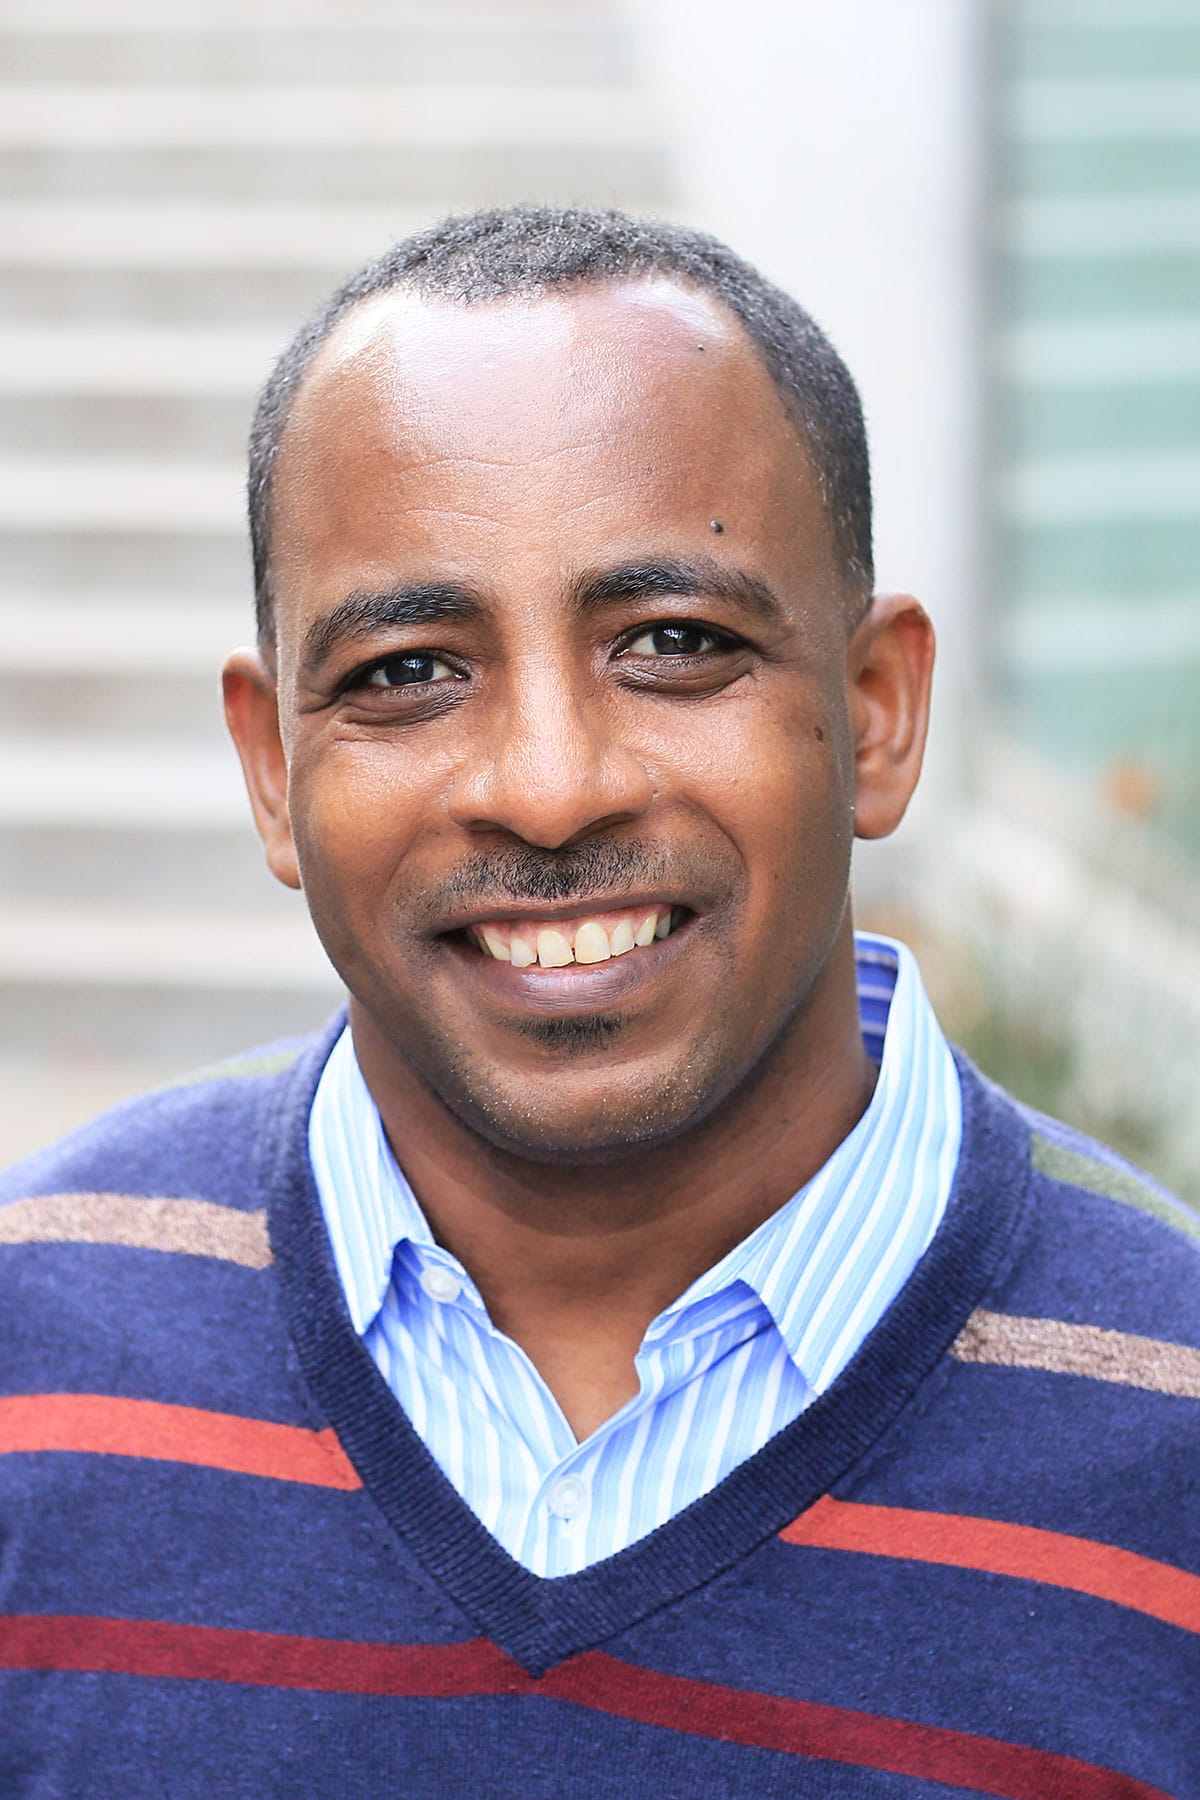 A photo of Tesfaye Mersha.